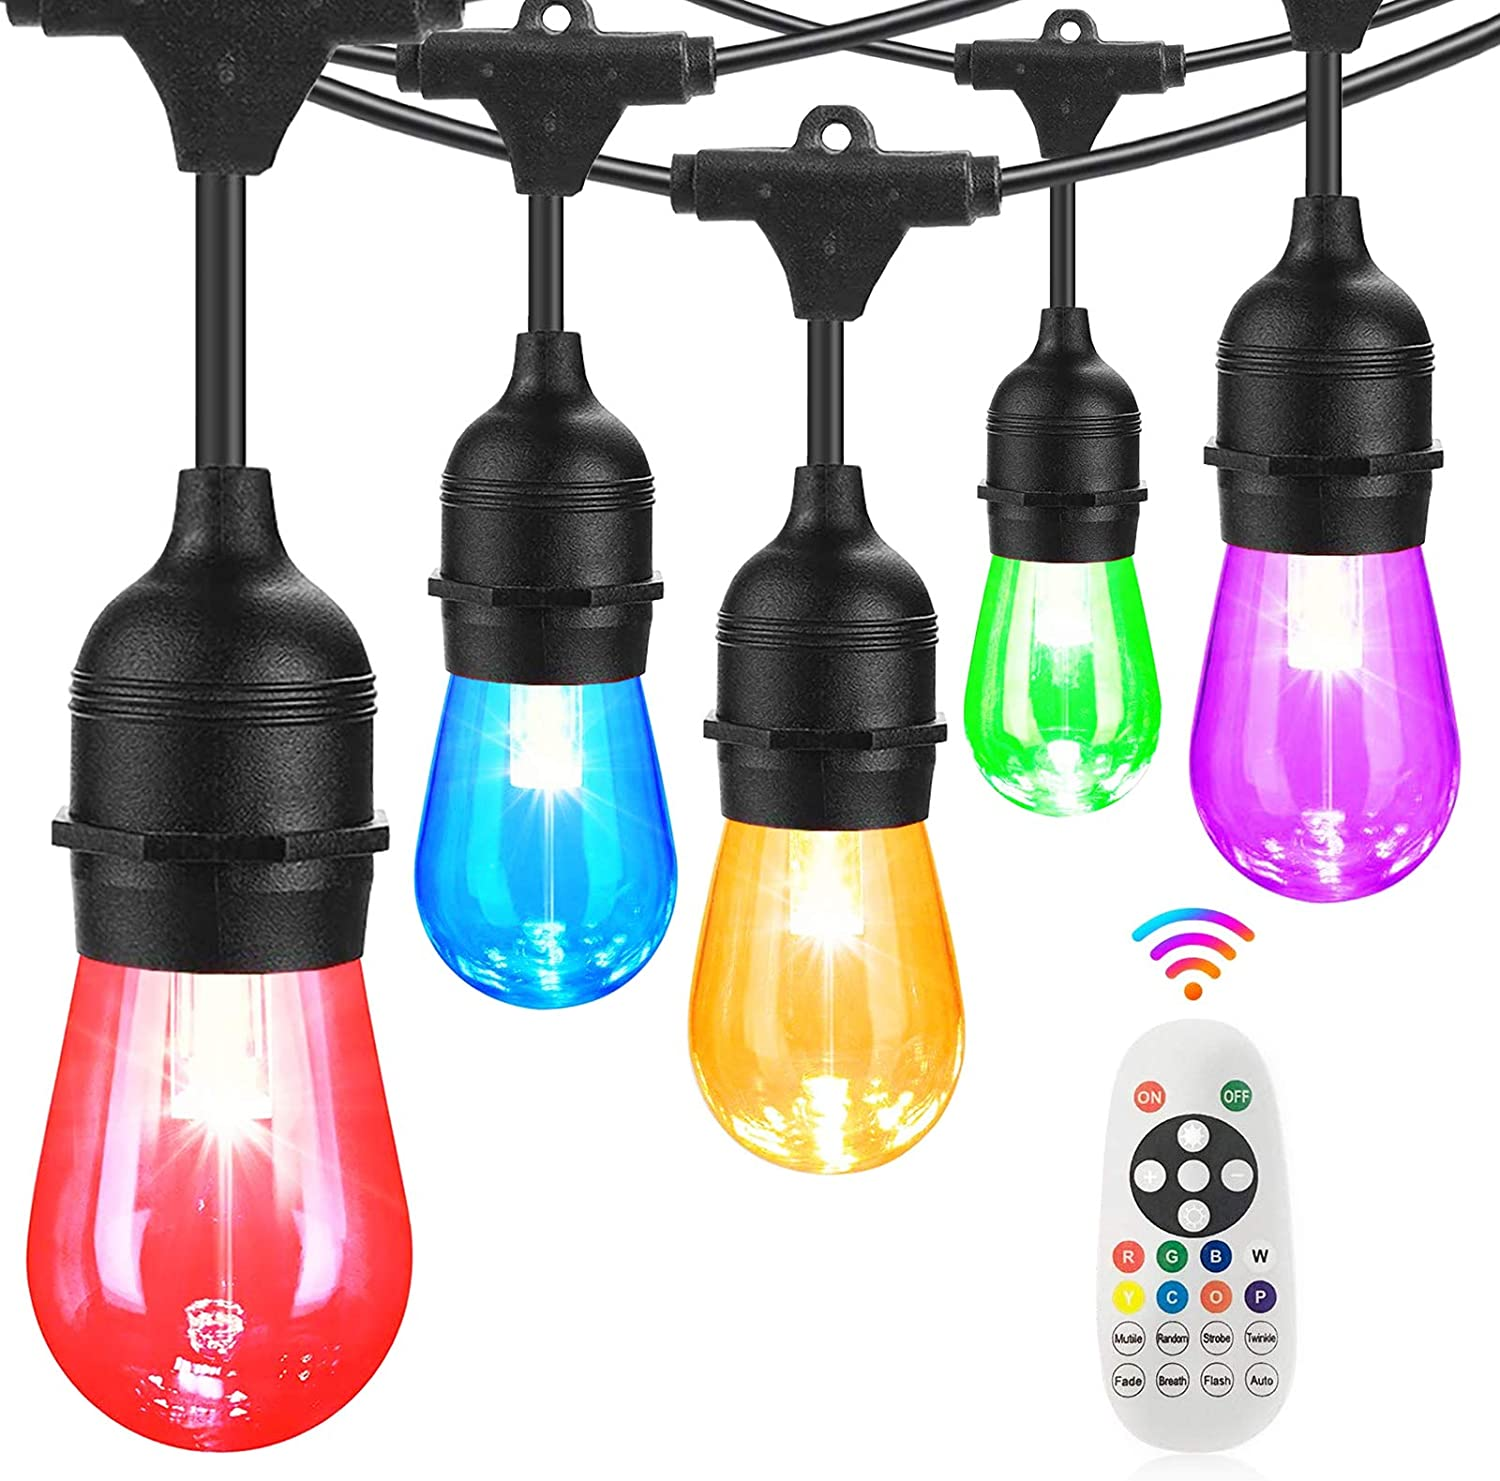 Finally resale start BRTLX Outdoor LED String Light Don't miss the campaign Color Dimmab Changing RGBW 100Ft